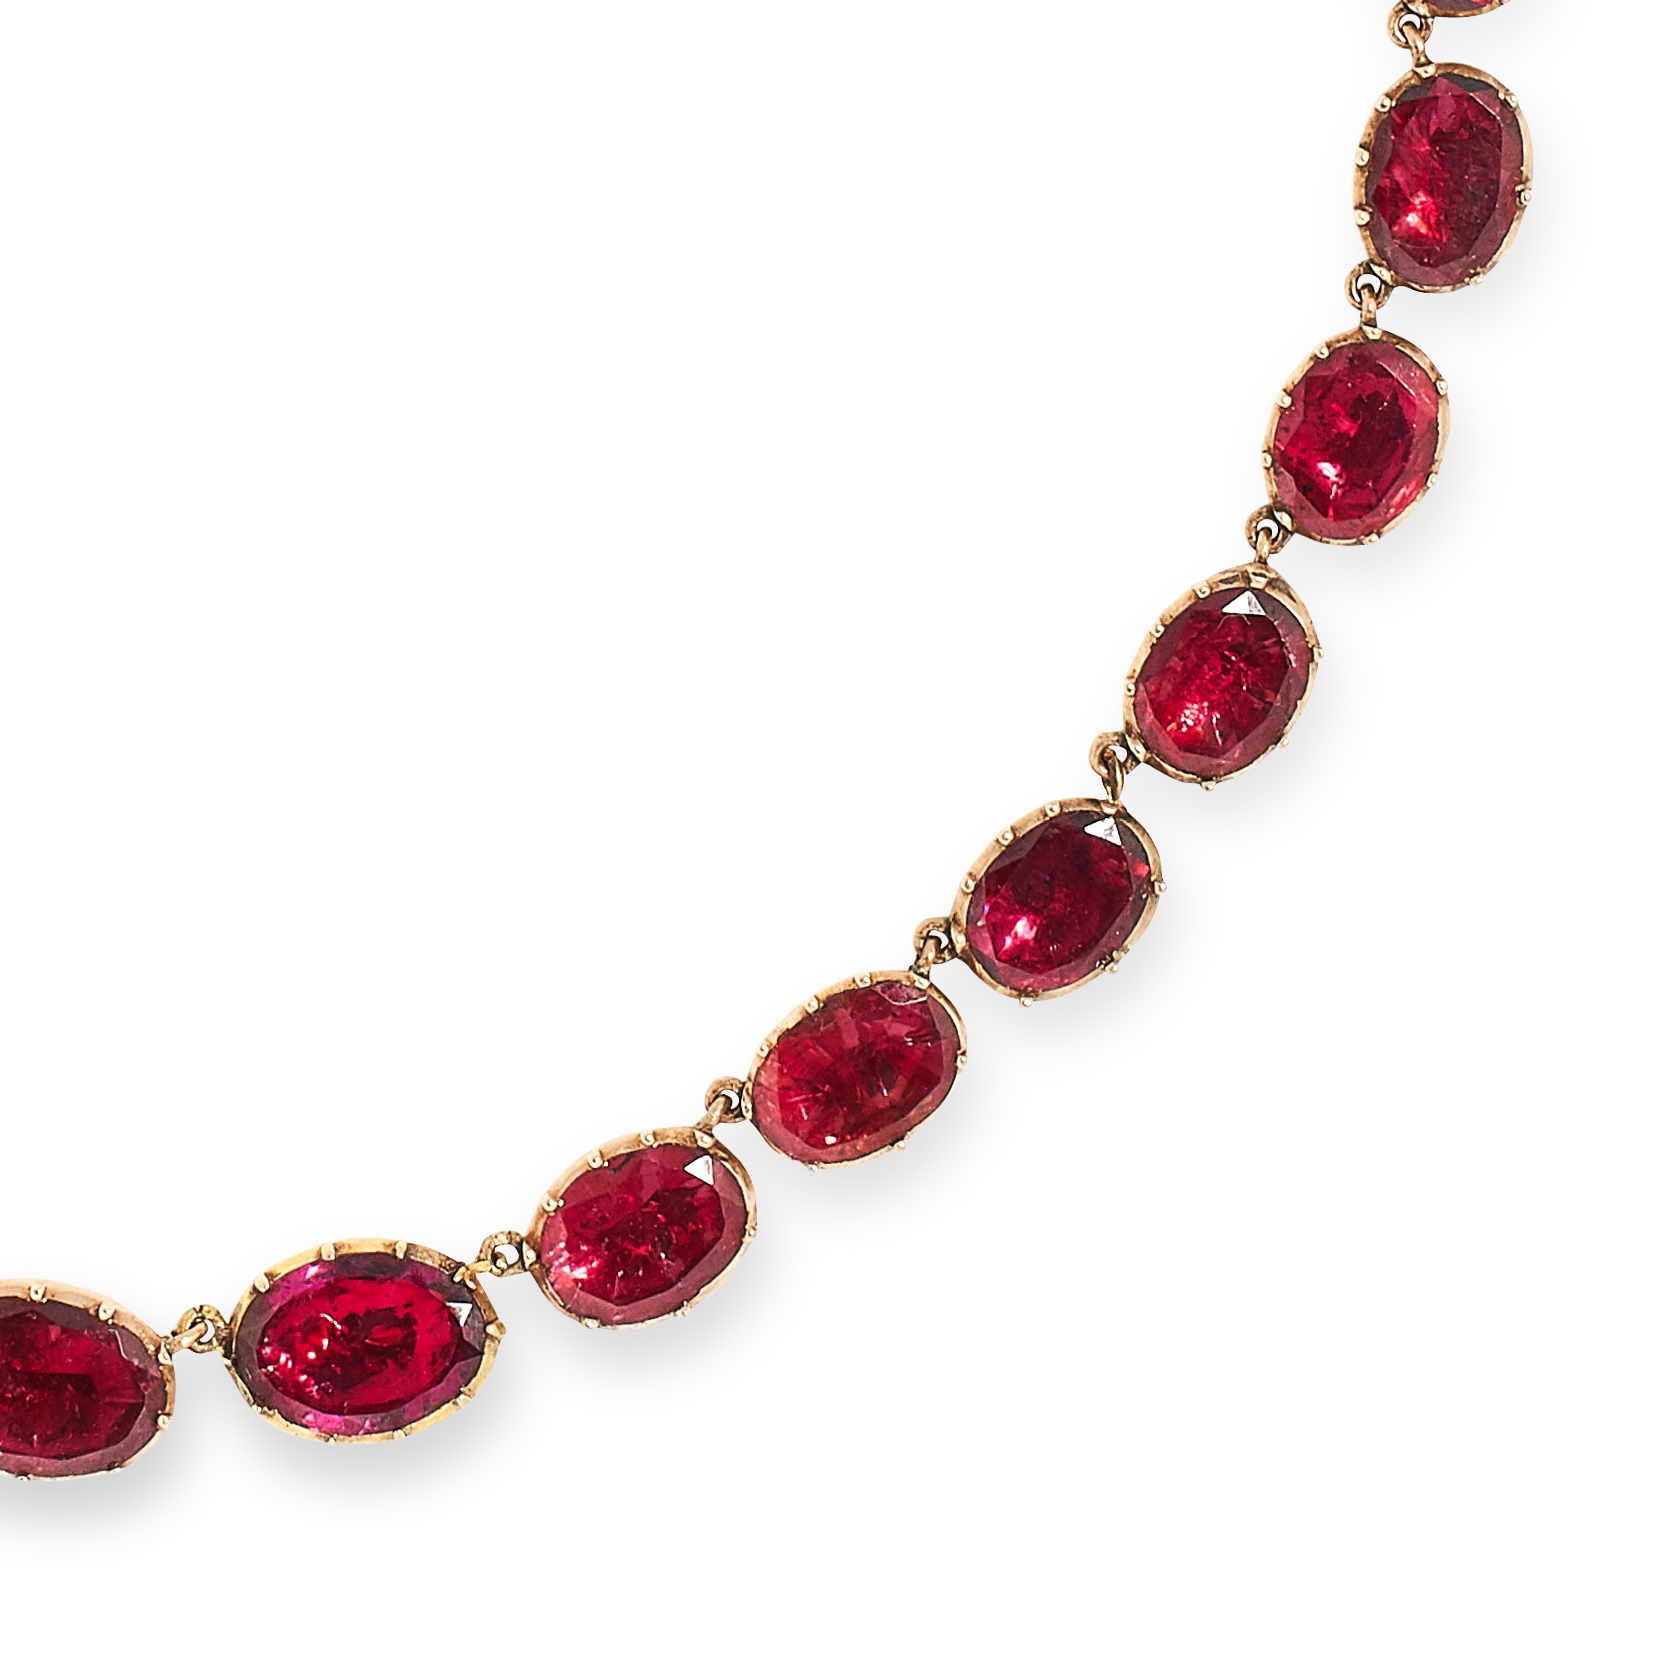 ANTIQUE VICTORIAN GARNET RIVIERA NECKLACE set with oval cut garnets, 39cm, 28.6g. - Bild 2 aus 2